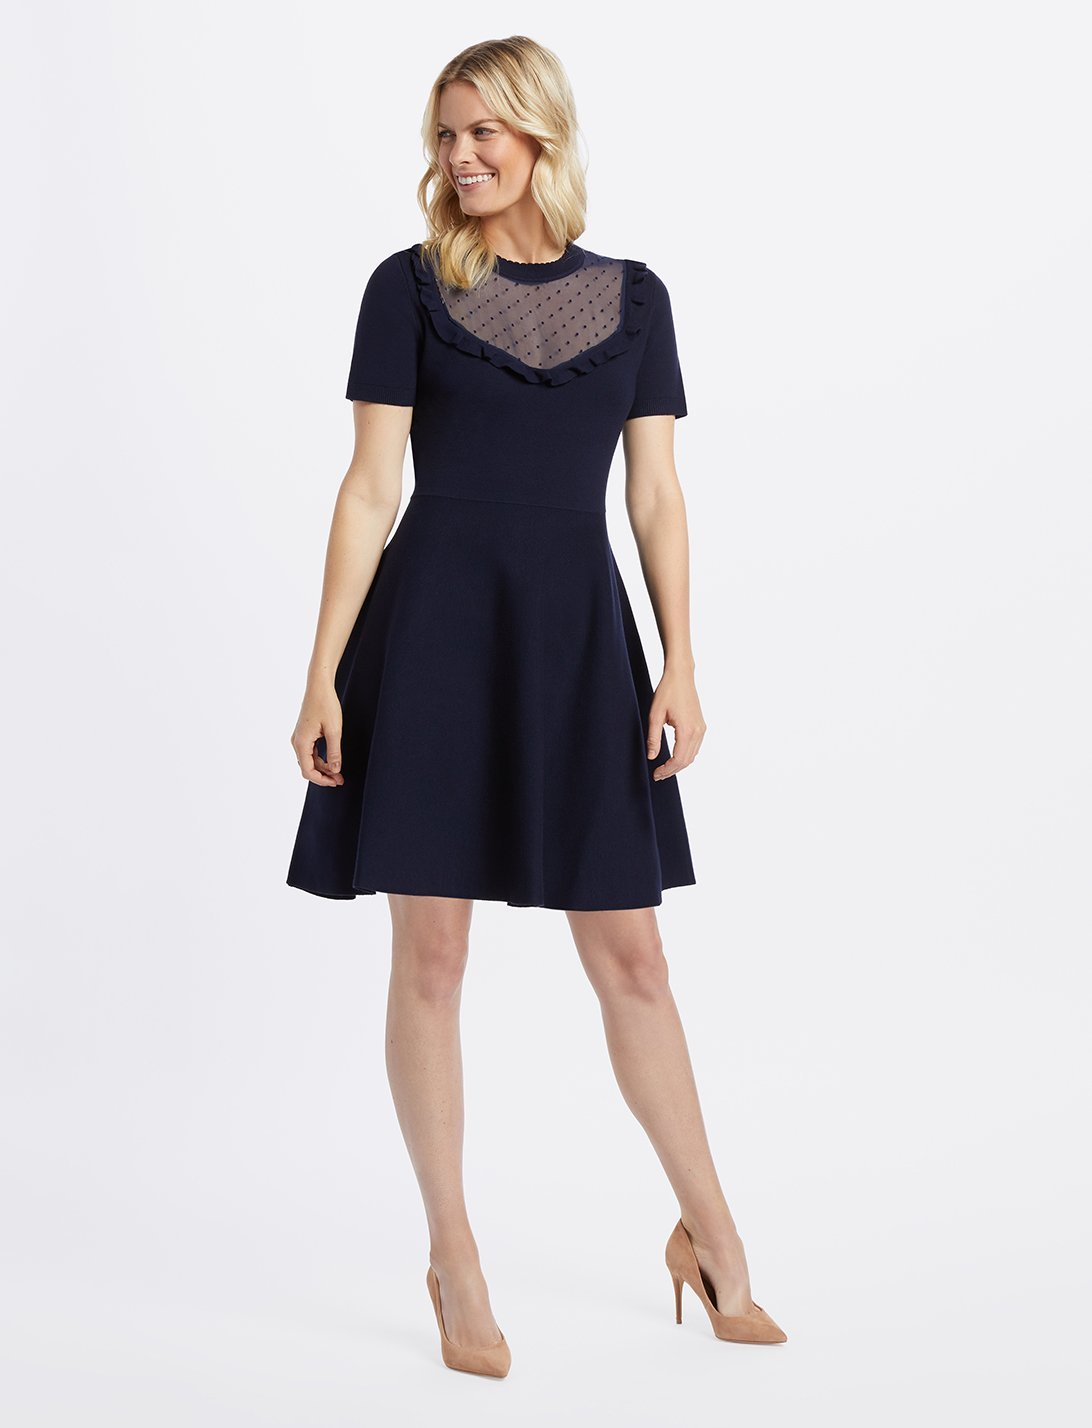 draper james a-line sweater dress